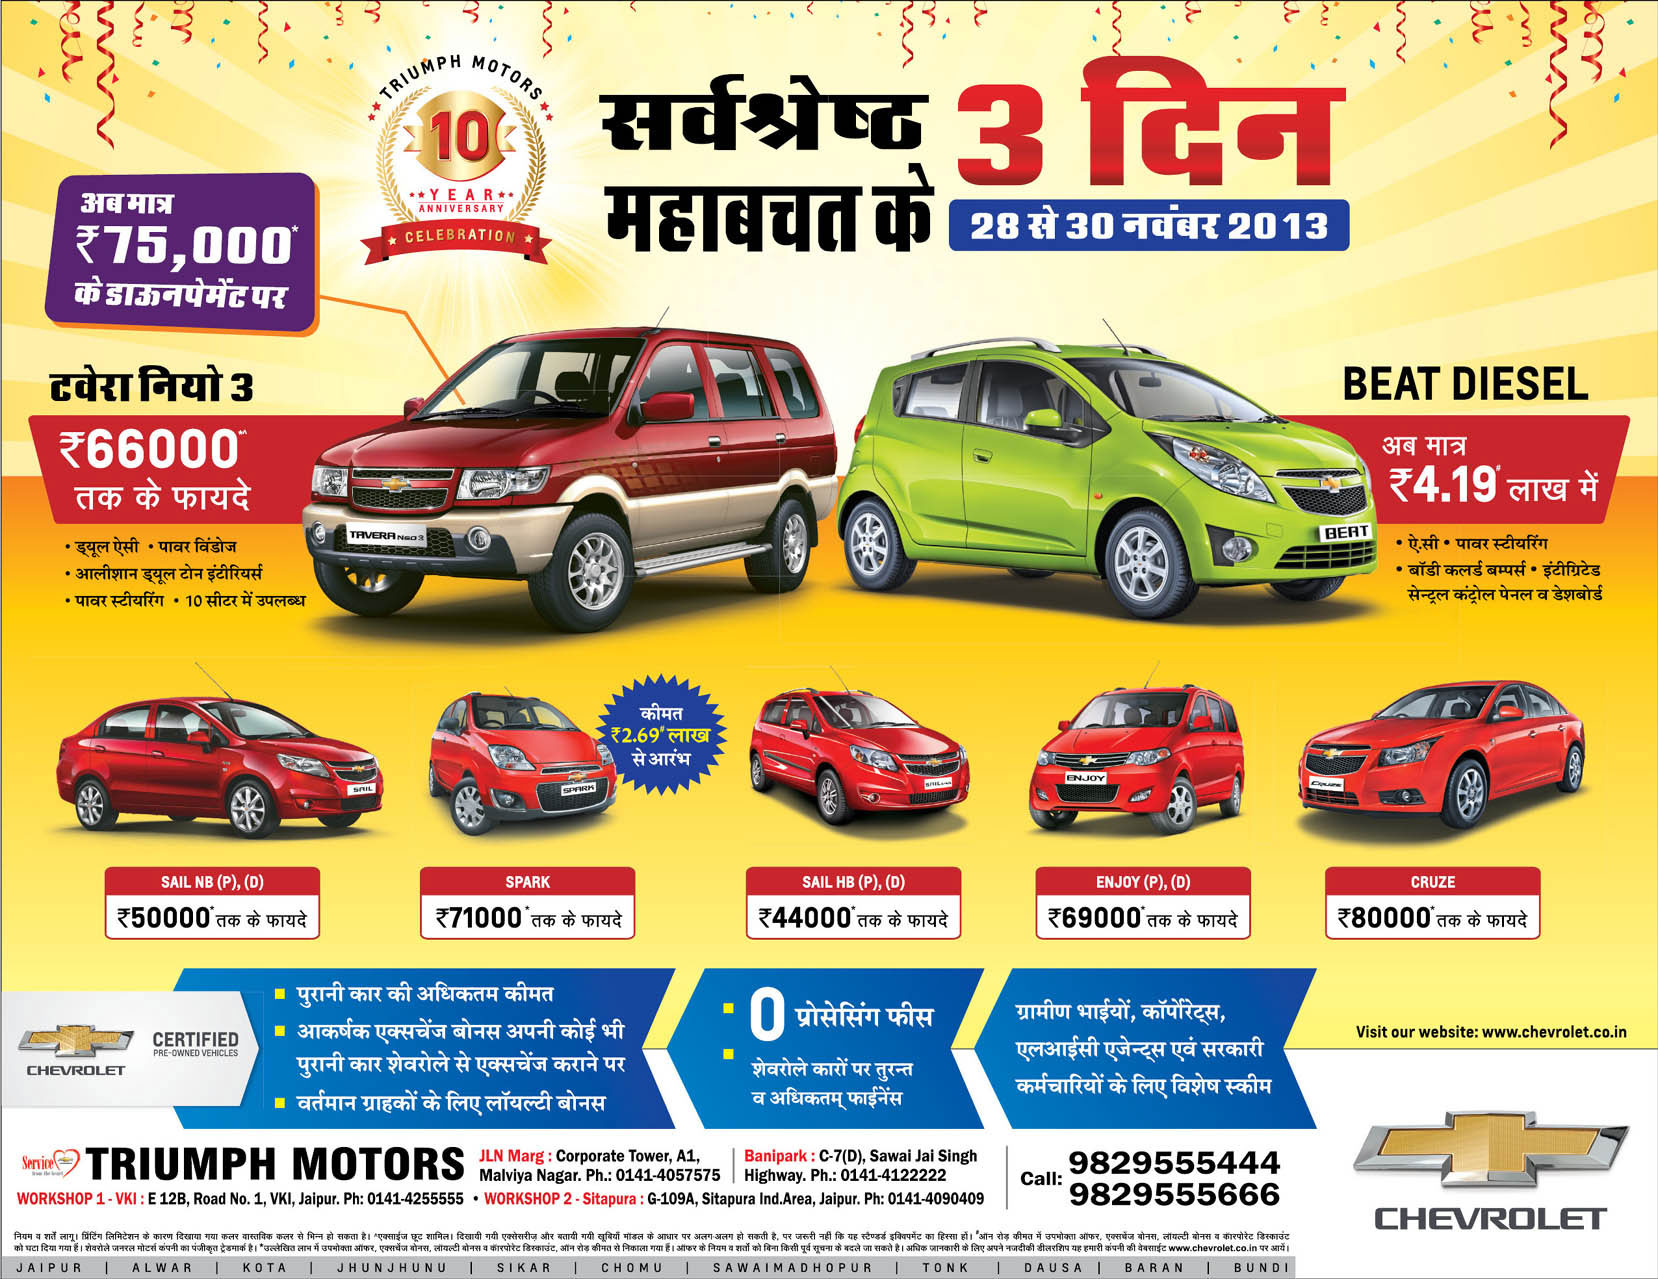 Best economy diesel cars in india